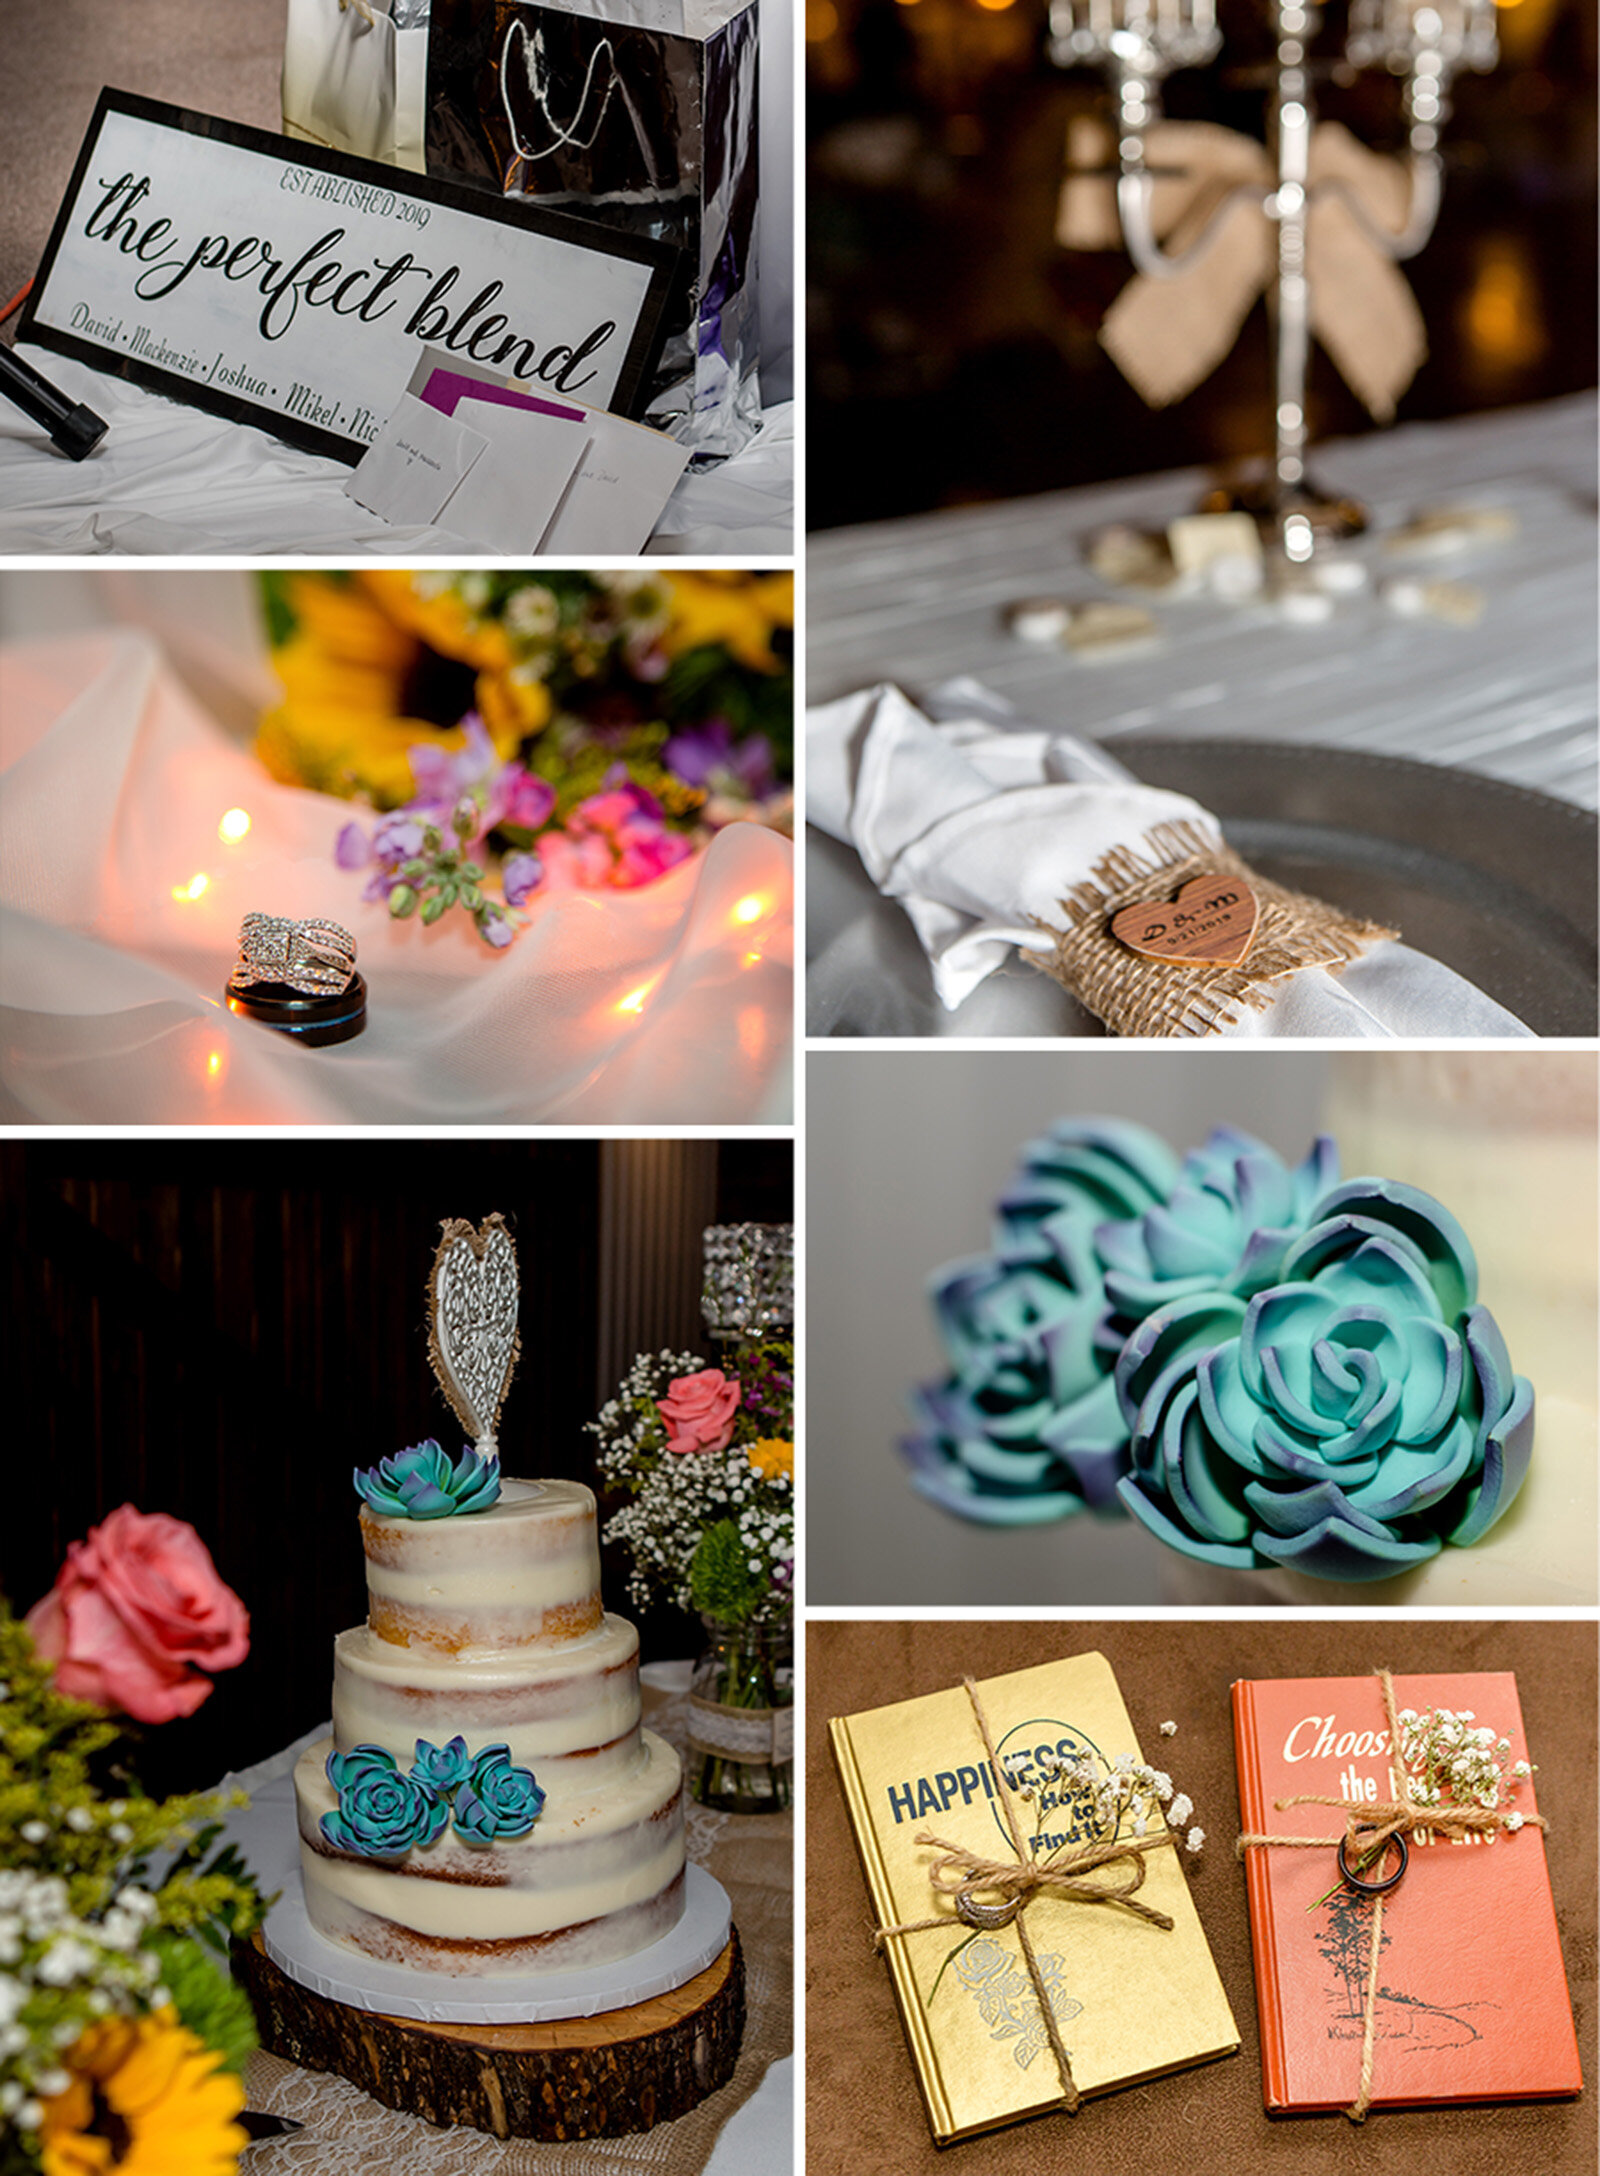 The details of the wedding were absolutely stunning!